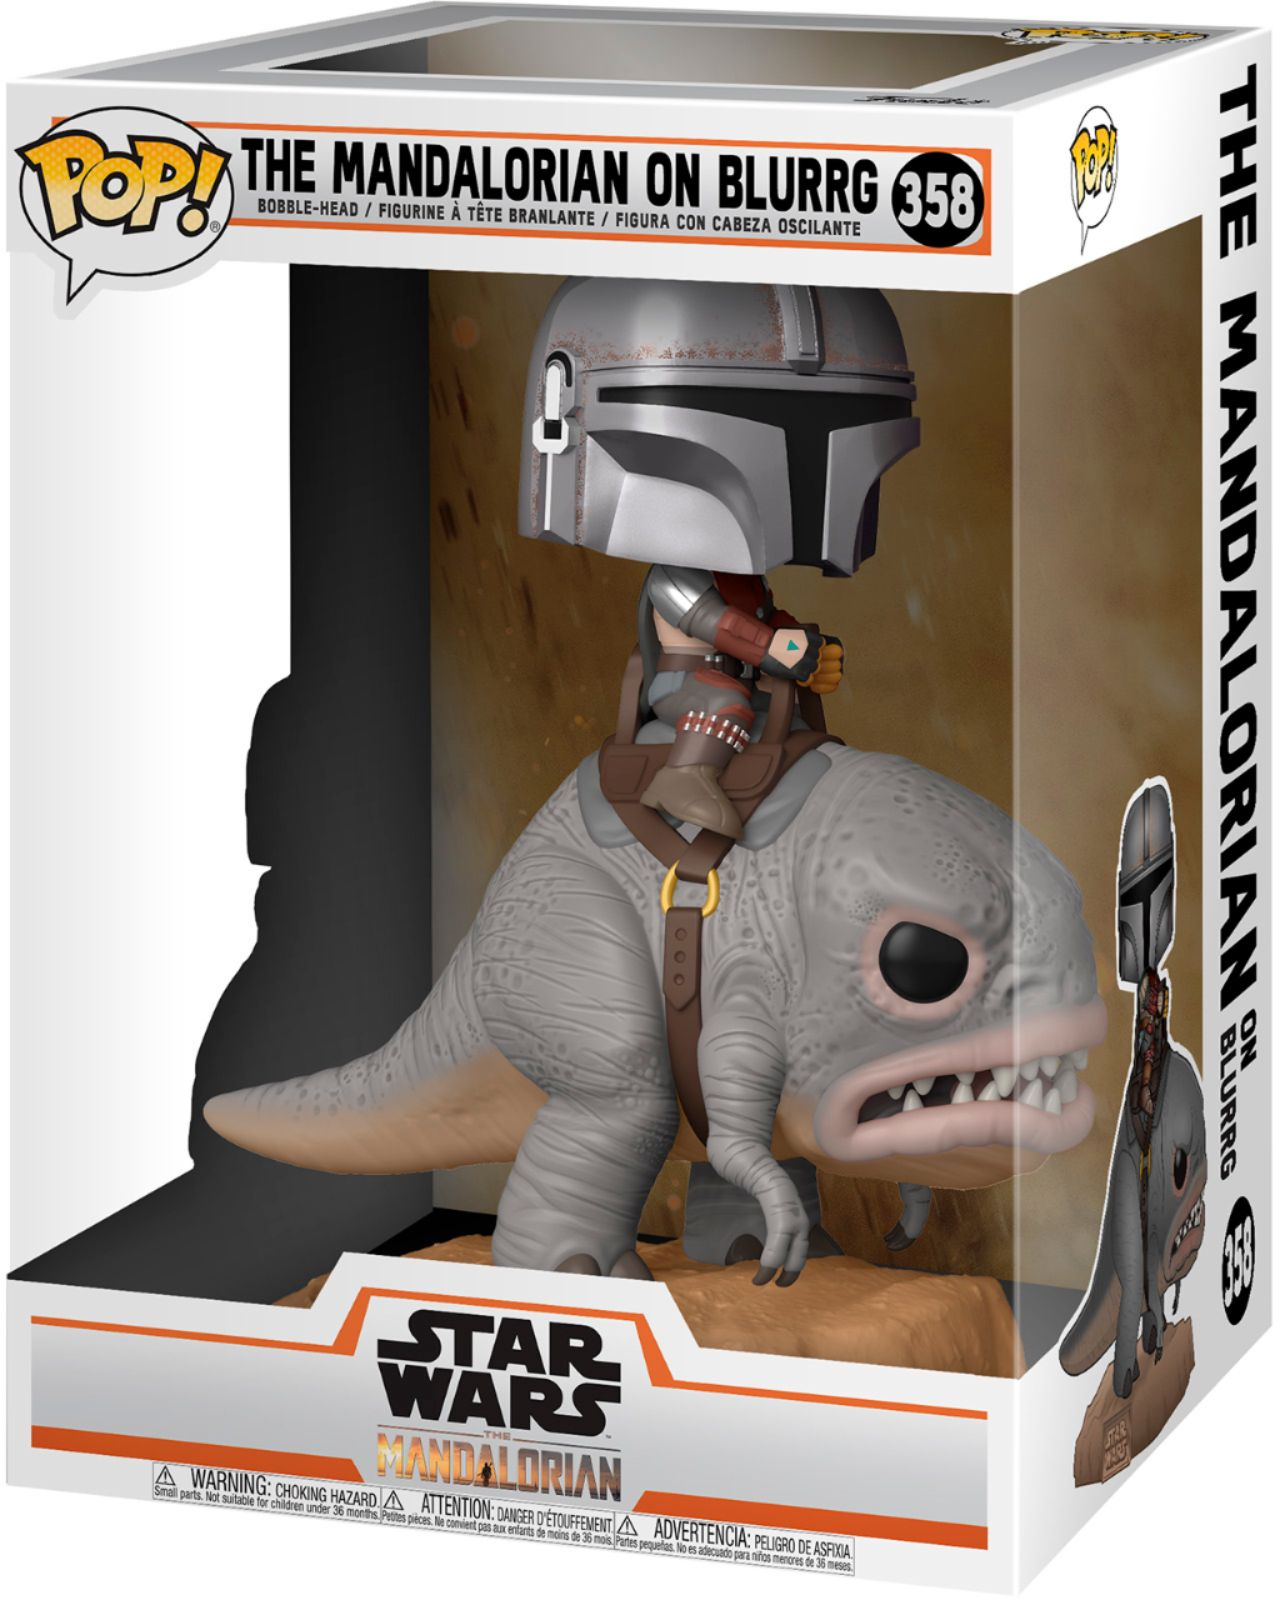 POP! Star Wars 358: Mandalorian - The Mandalorian on Blurrg